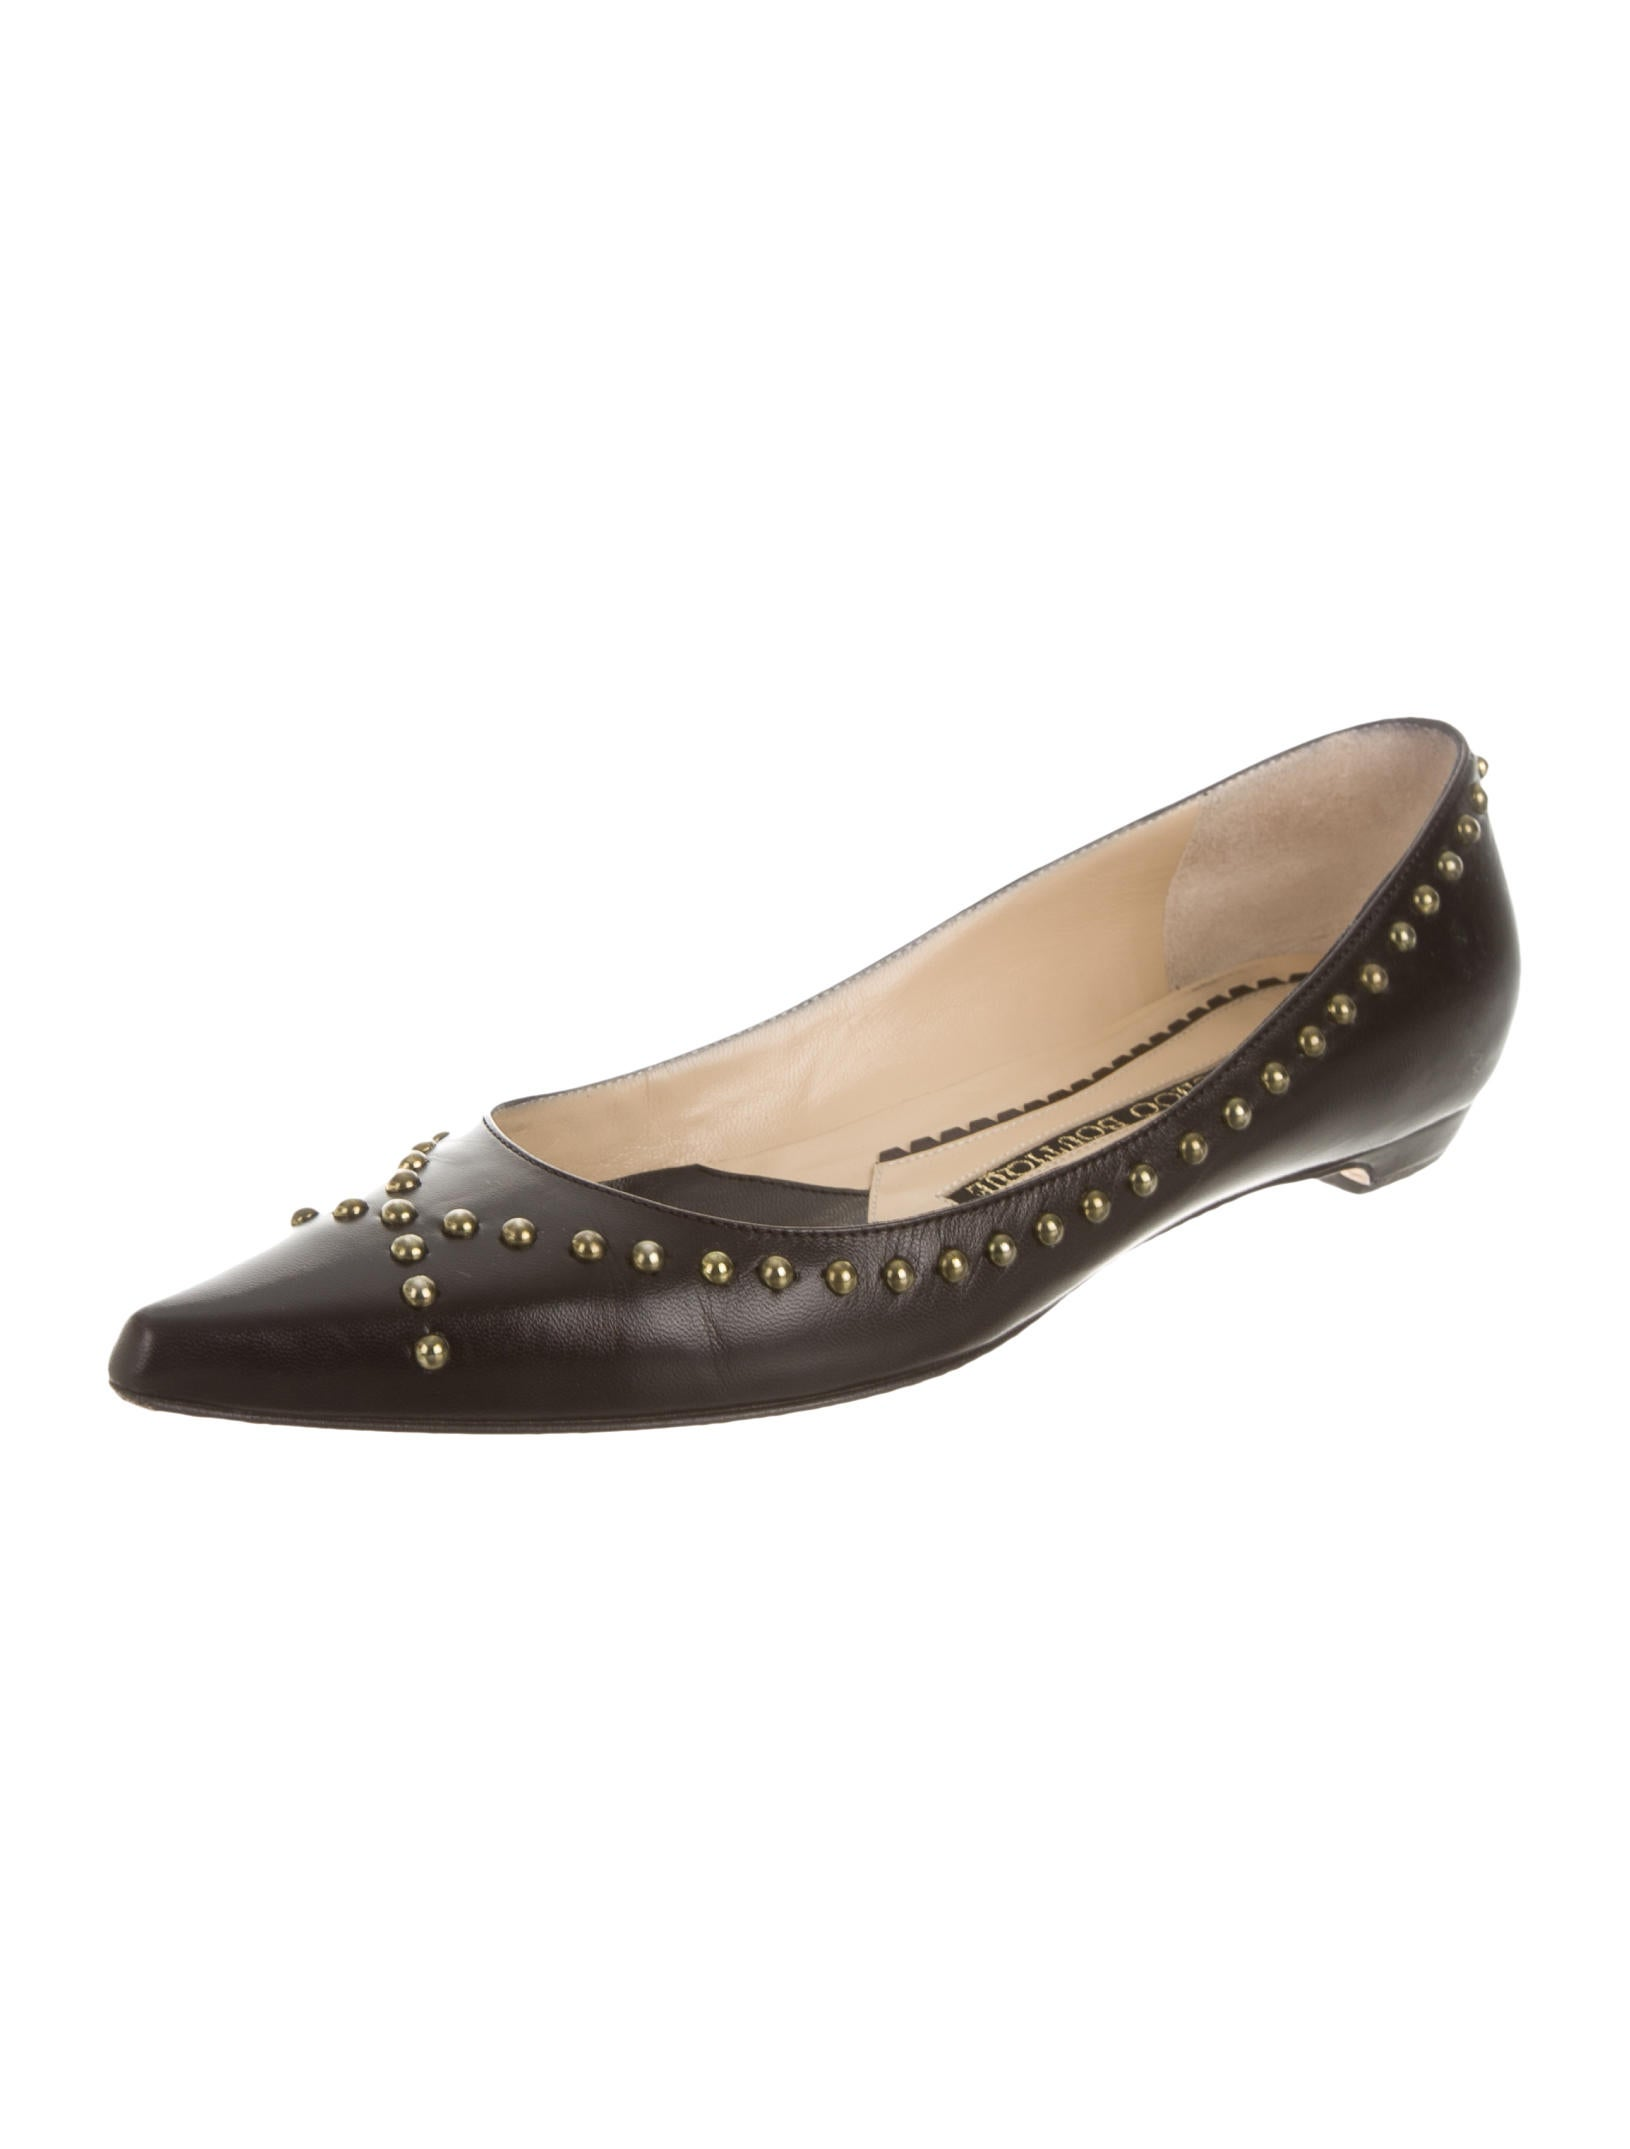 Pointy Toe Flats. Add a splash of retro glam to any outfit with a pair of pointy toe flats. Ballet flats and other well-loved styles are elegant with the addition of even a small pointed toe. For more dramatic and edgy looks, choose shoes with sharply pointed toes.